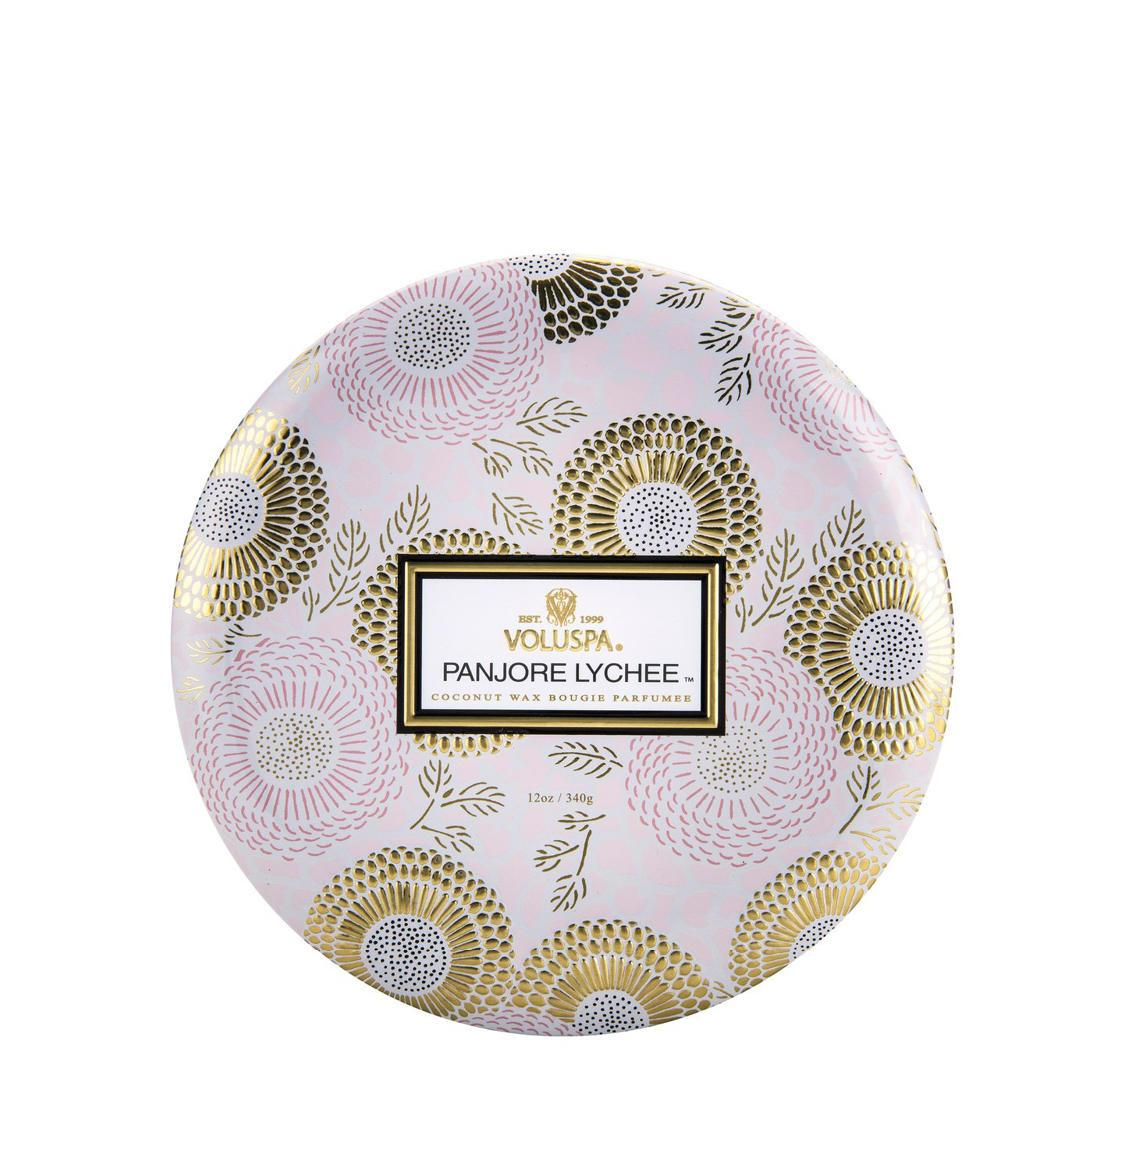 Voluspa Panjore Lychee 3 Wick Candle 340g